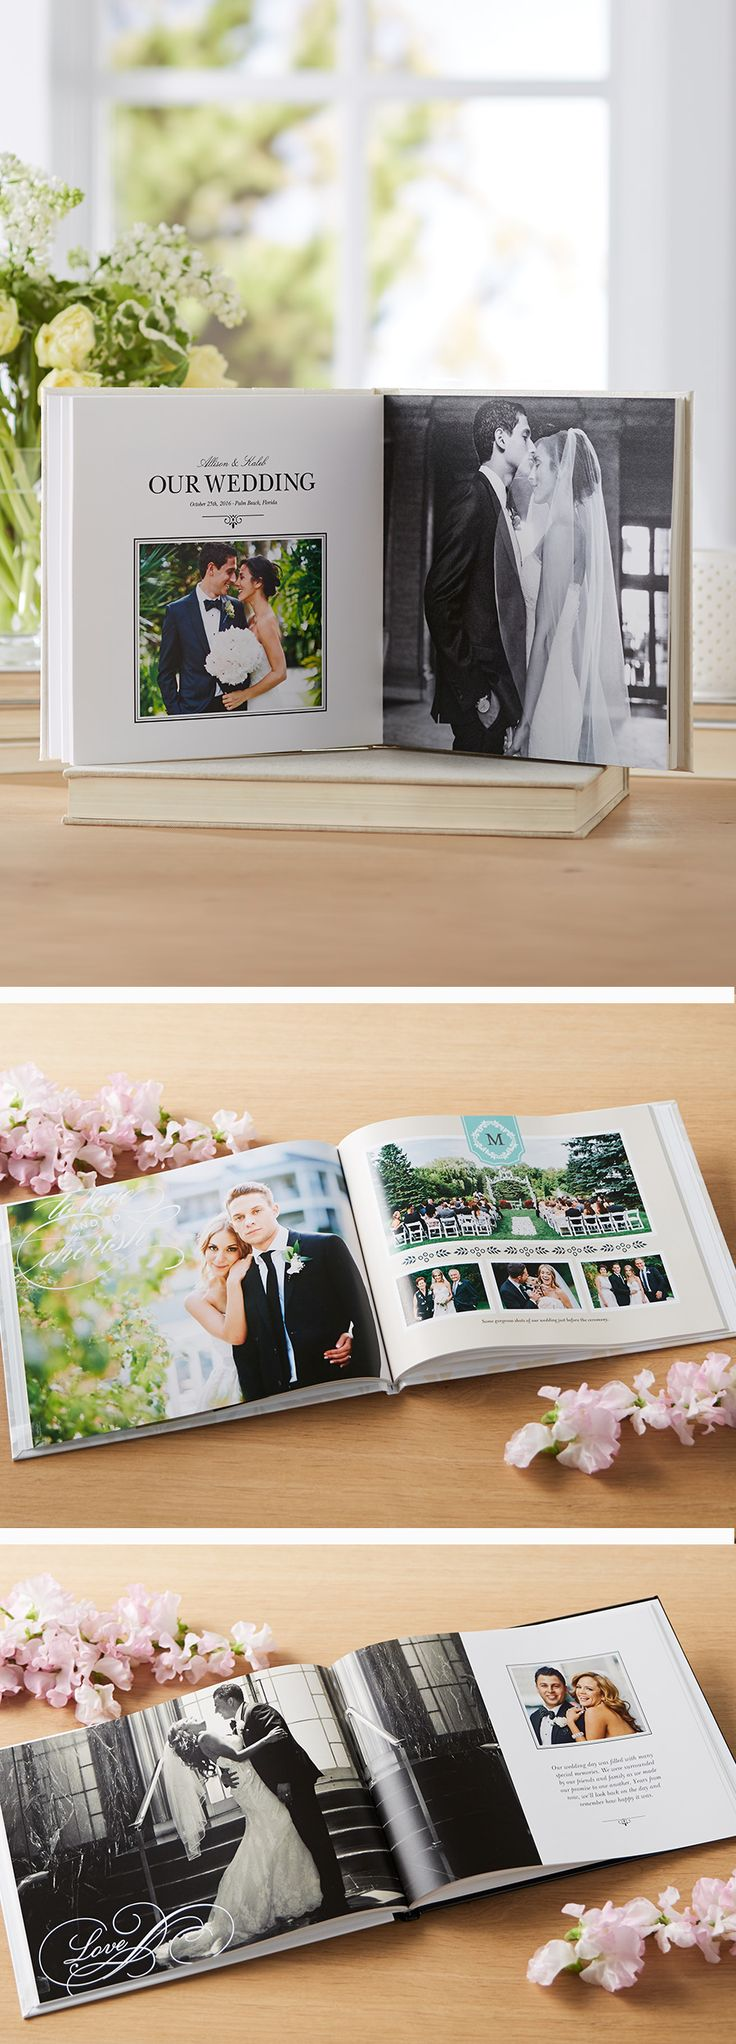 Now this is how to showcase those wedding snaps in style! Photo Books by @shutterfly. Use the Make My Book service to get professionally designed keepsakes made just for you. #MyShutterfly #Shutterfly #ad #photobook #wedding #album #photoalbum #weddingphoto #weddingalbum